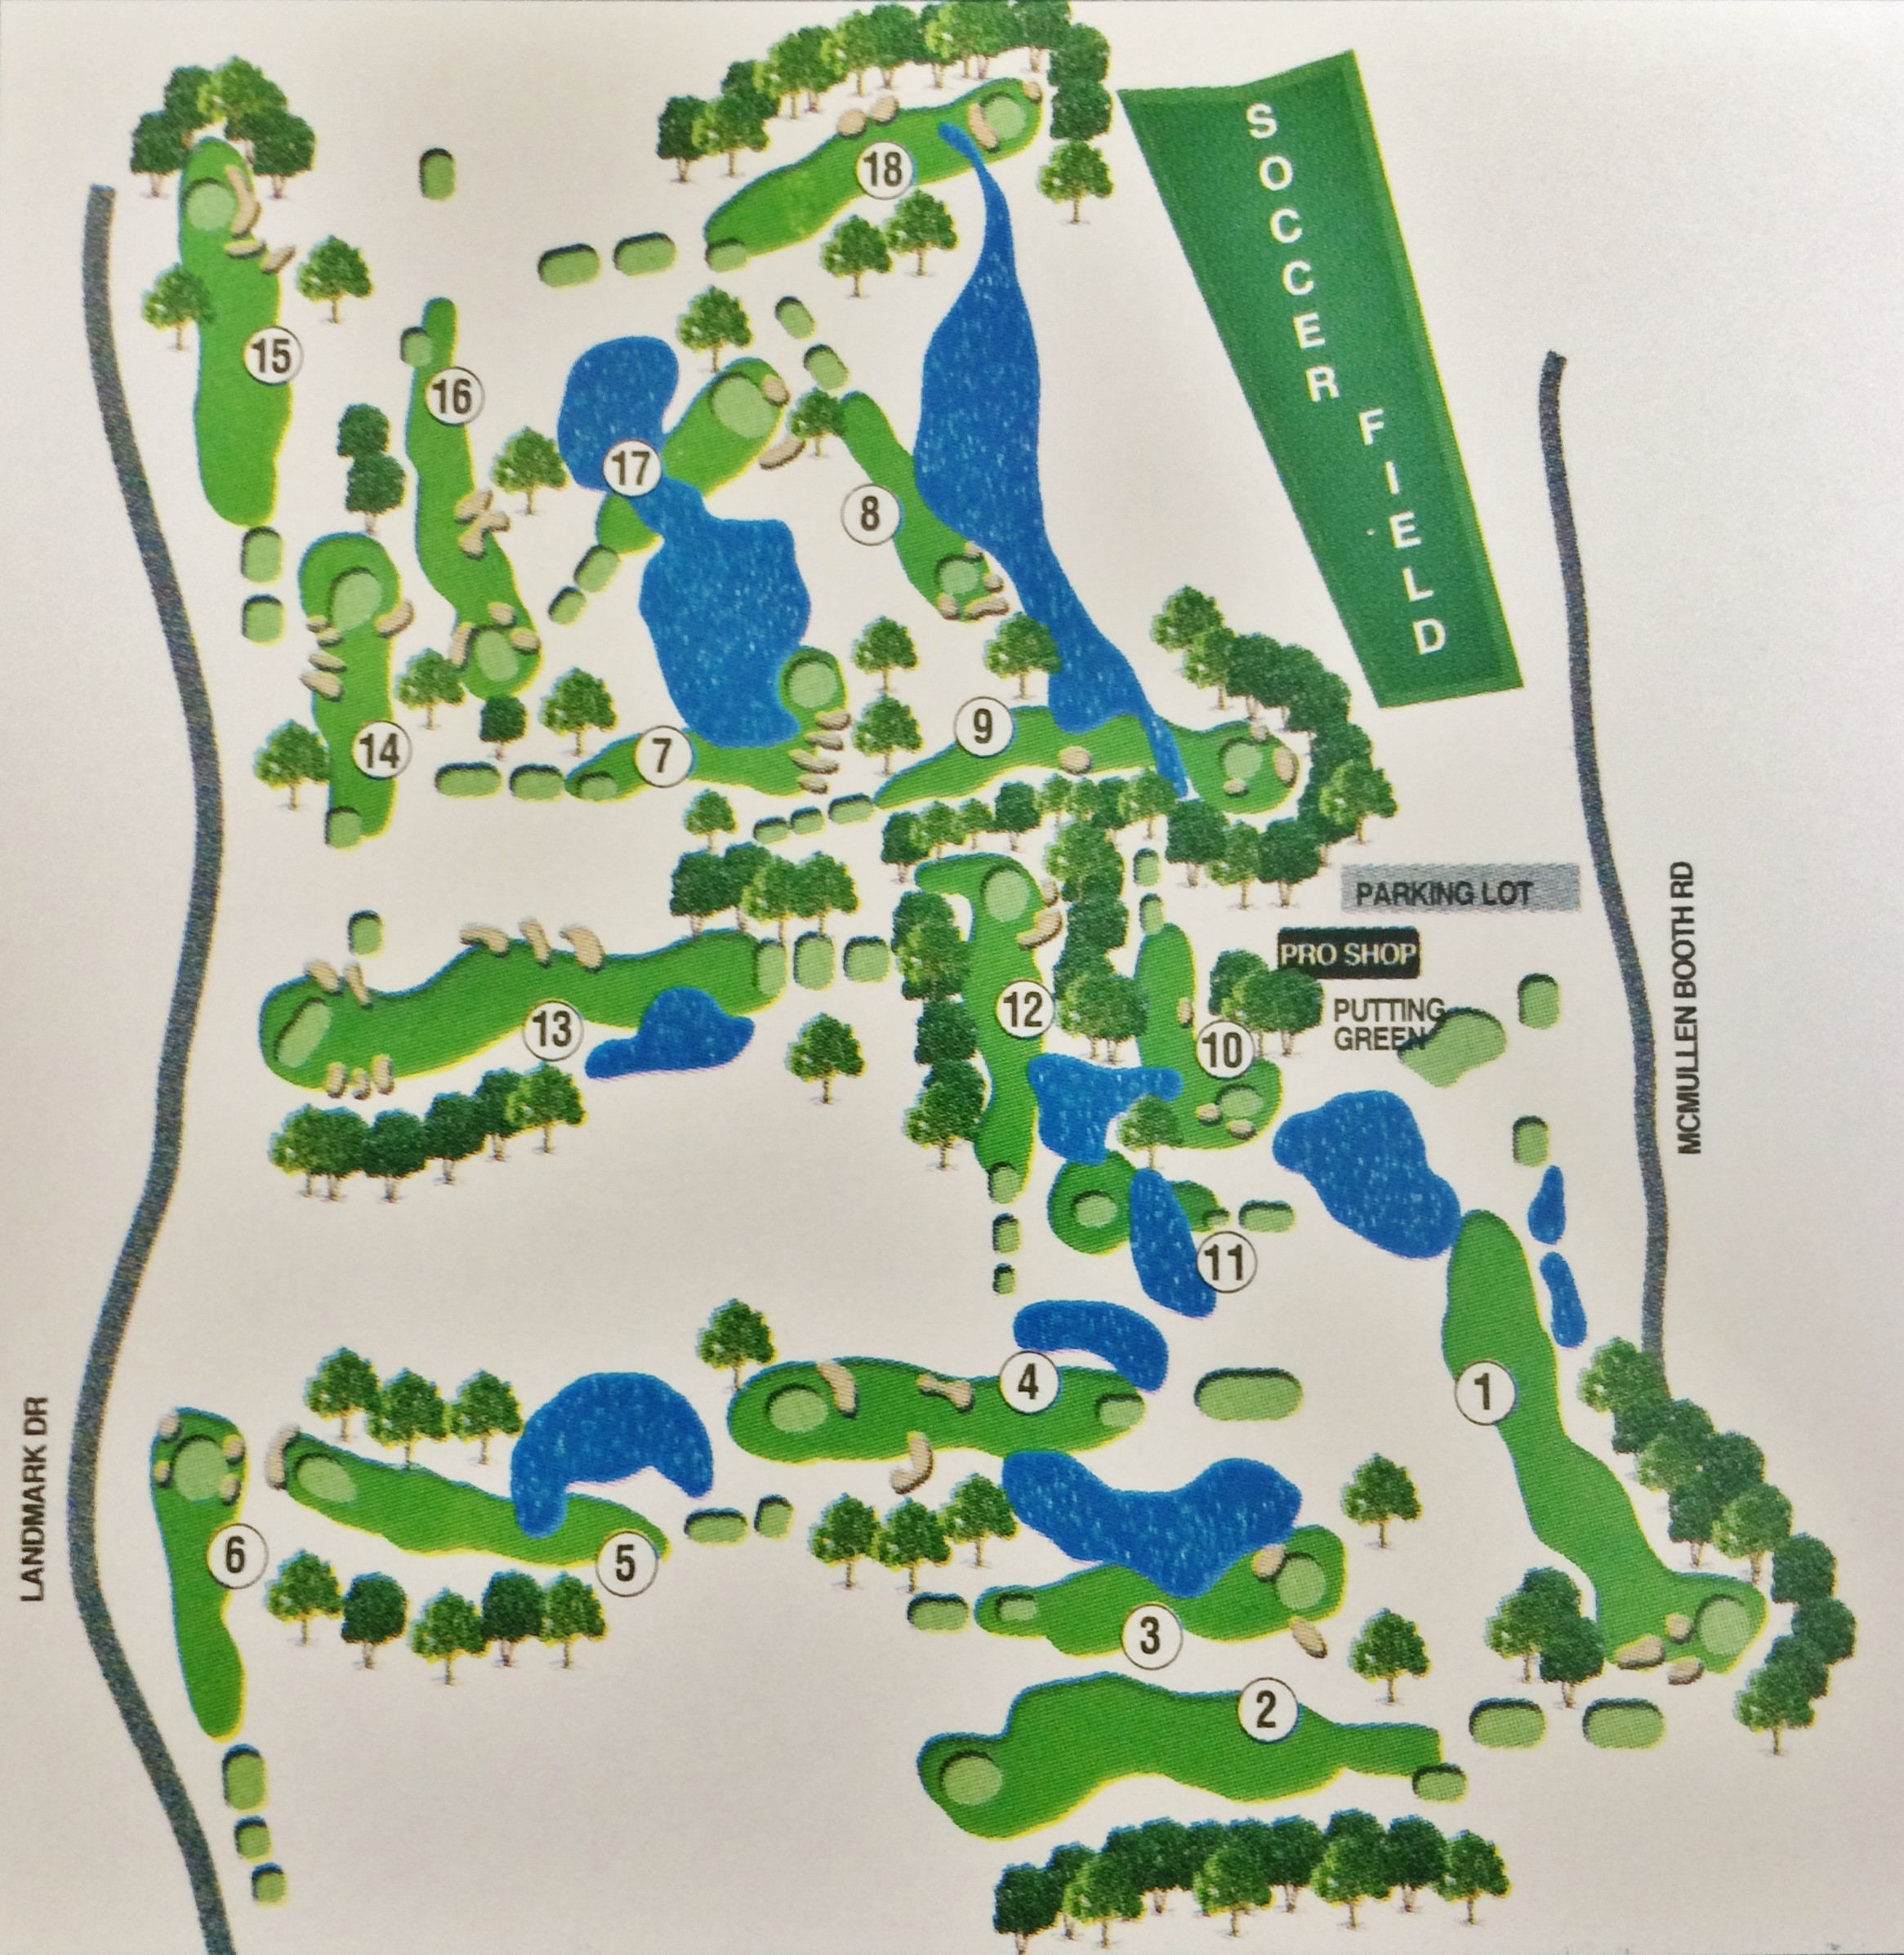 Golf Course Map Of Florida Courses 7 6 | Globalsupportinitiative - Florida Golf Courses Map